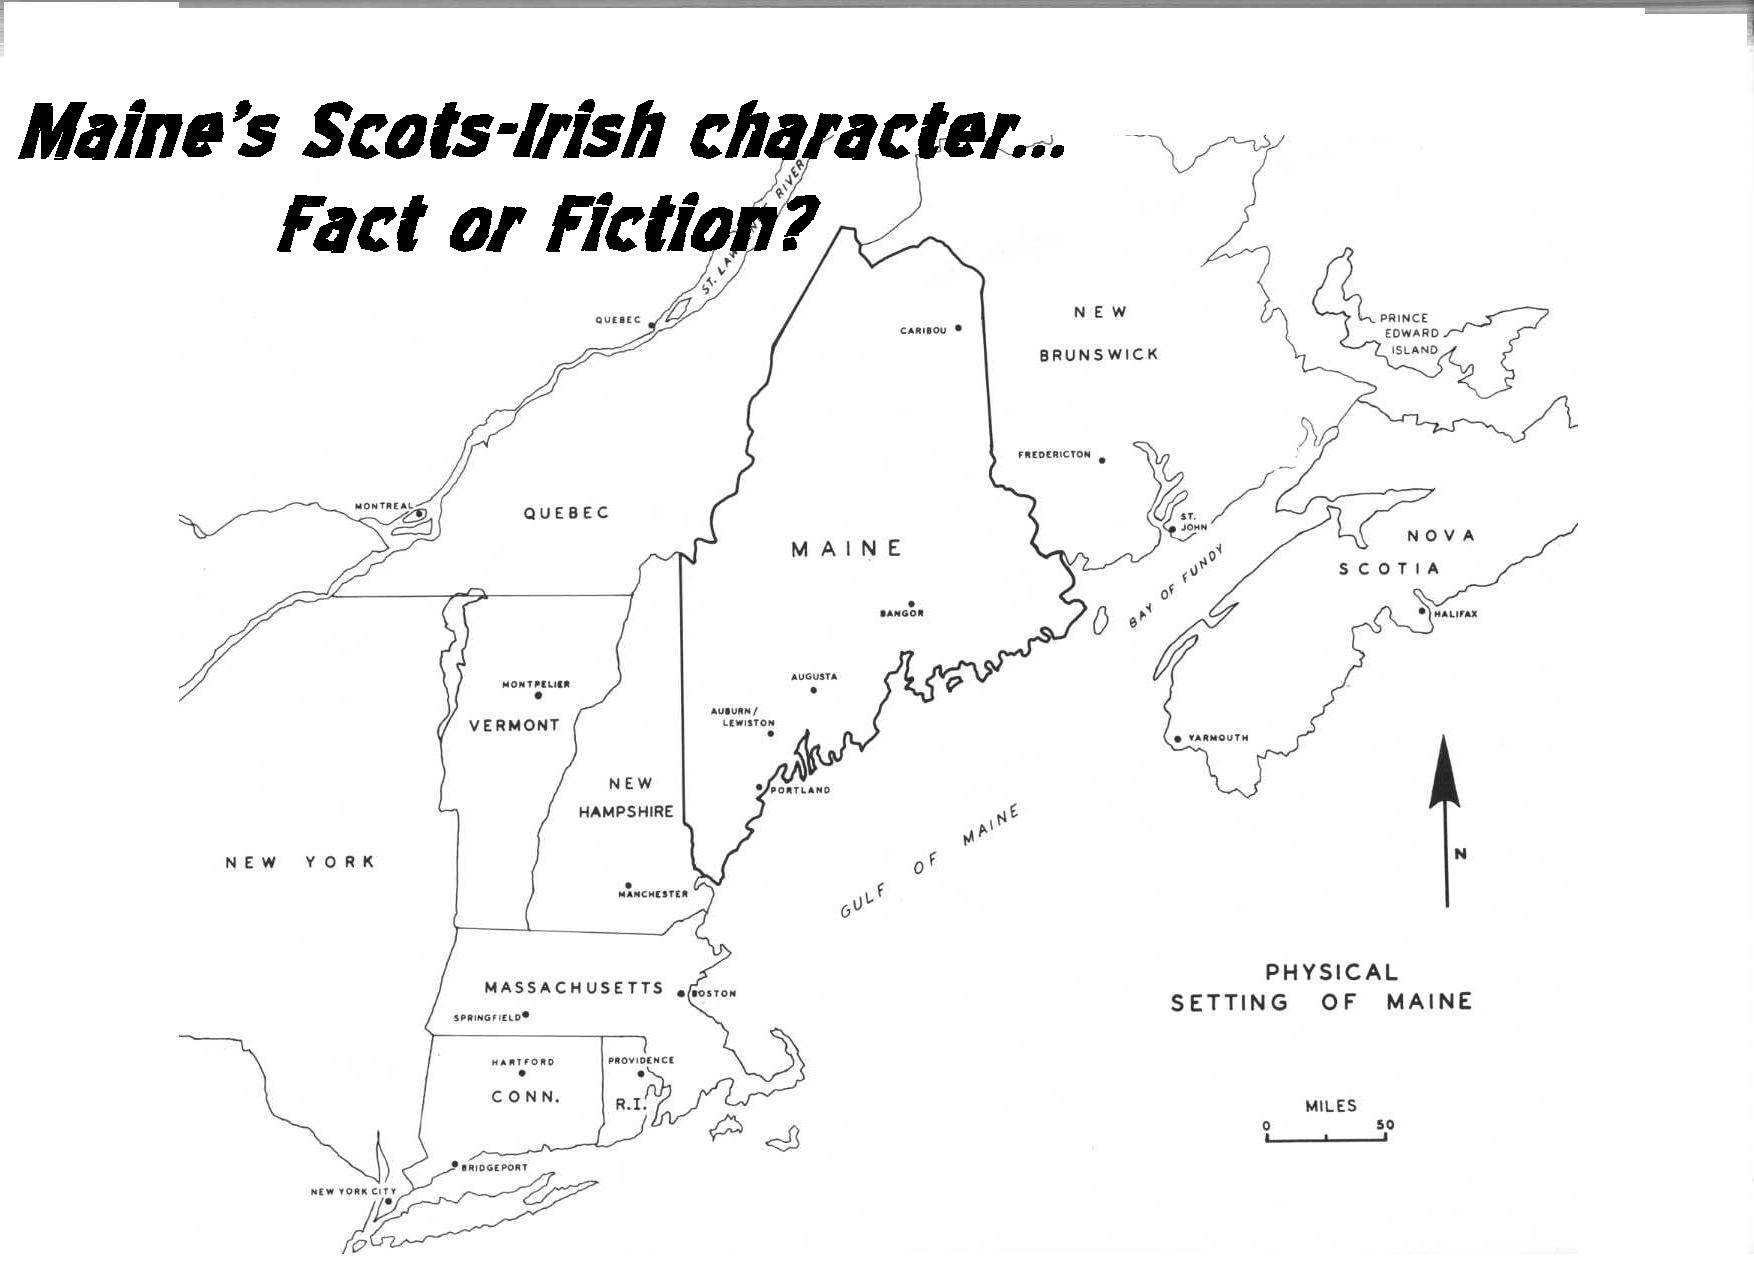 Maine's Scots-Irish Character...Fact or Fiction - This popular power-point presentation explores documented and perceived cultural traits of both early New England Scots-Irish communities and Mainer's today. This always creates a lively discussion of individual family folkways from attendees.